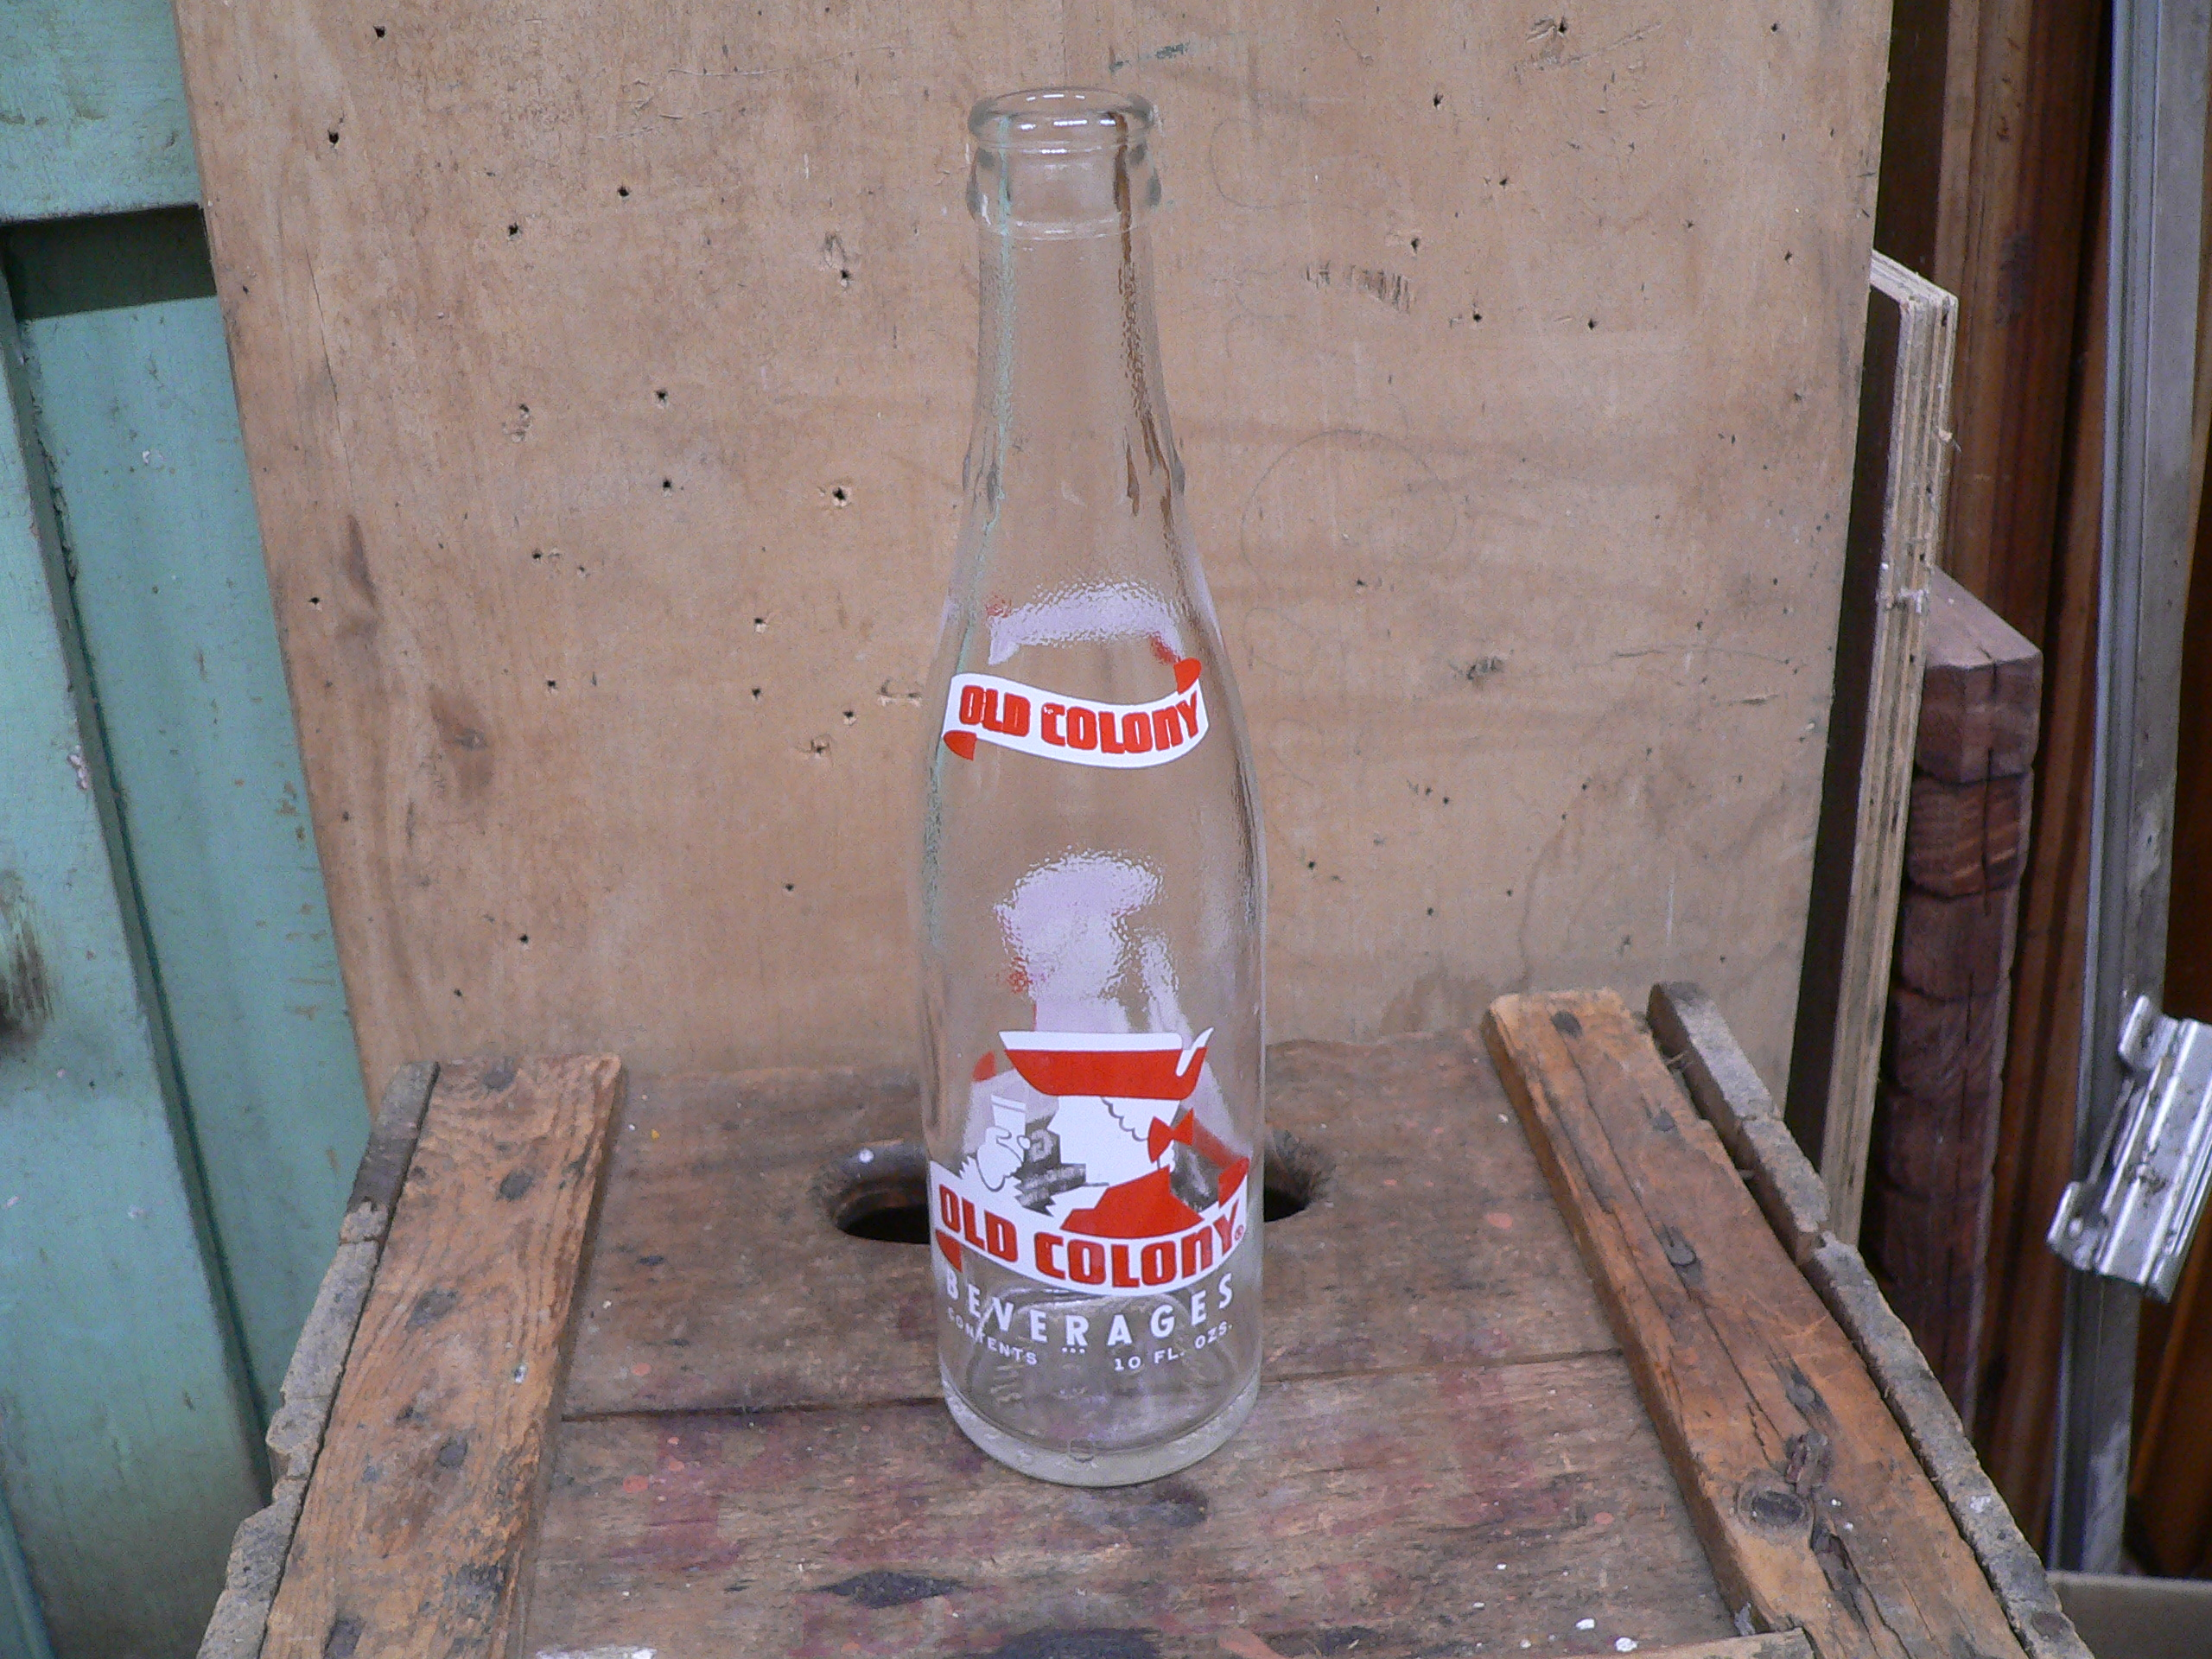 Bouteille antique old colony beverages # 5746.1